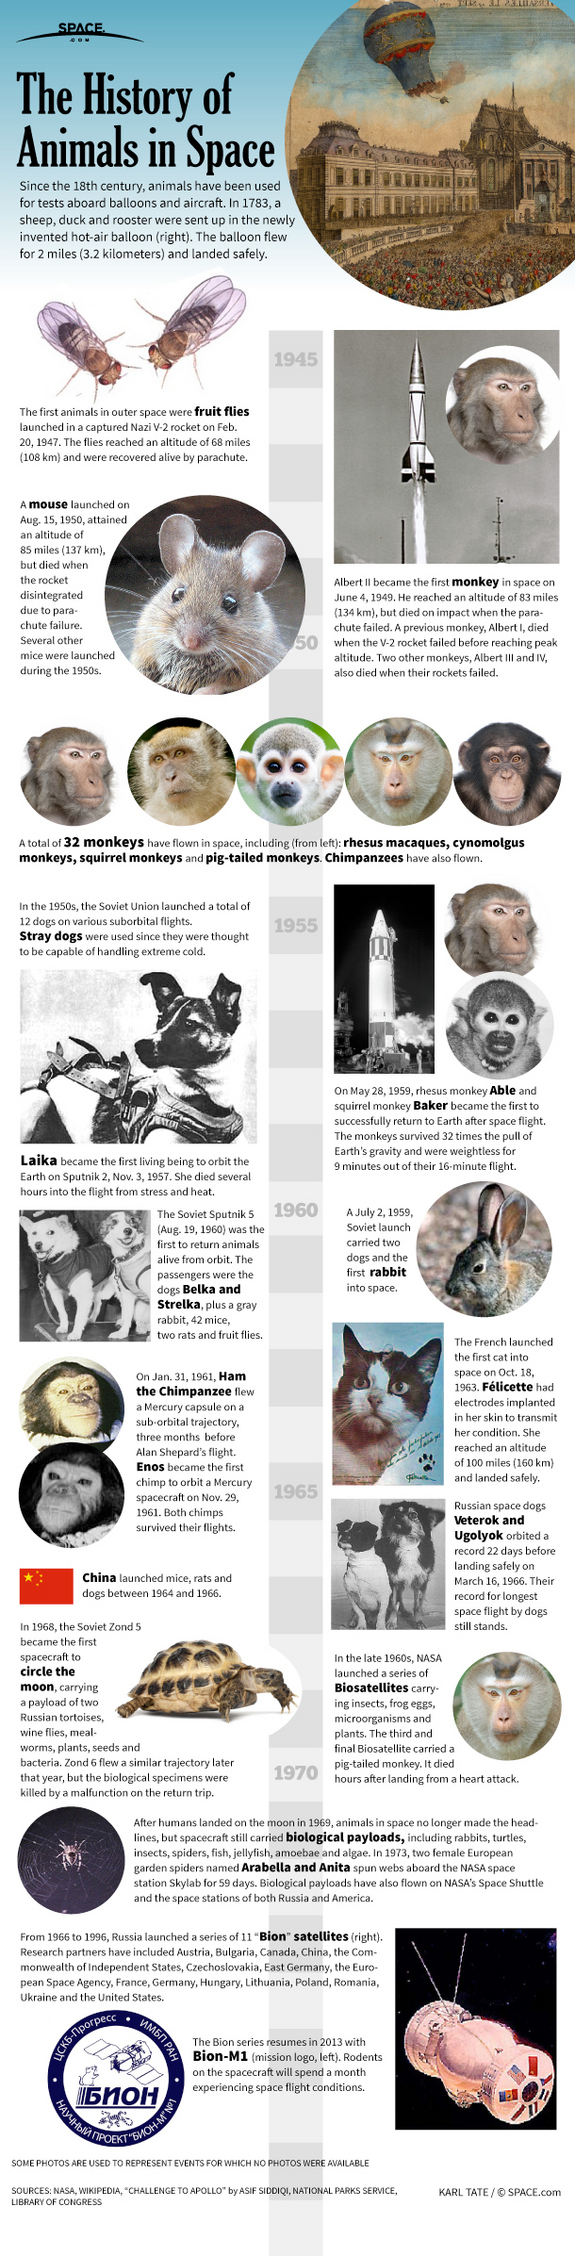 Find out about the history of animals used for testing in space flight, in this SPACE.com infographic.